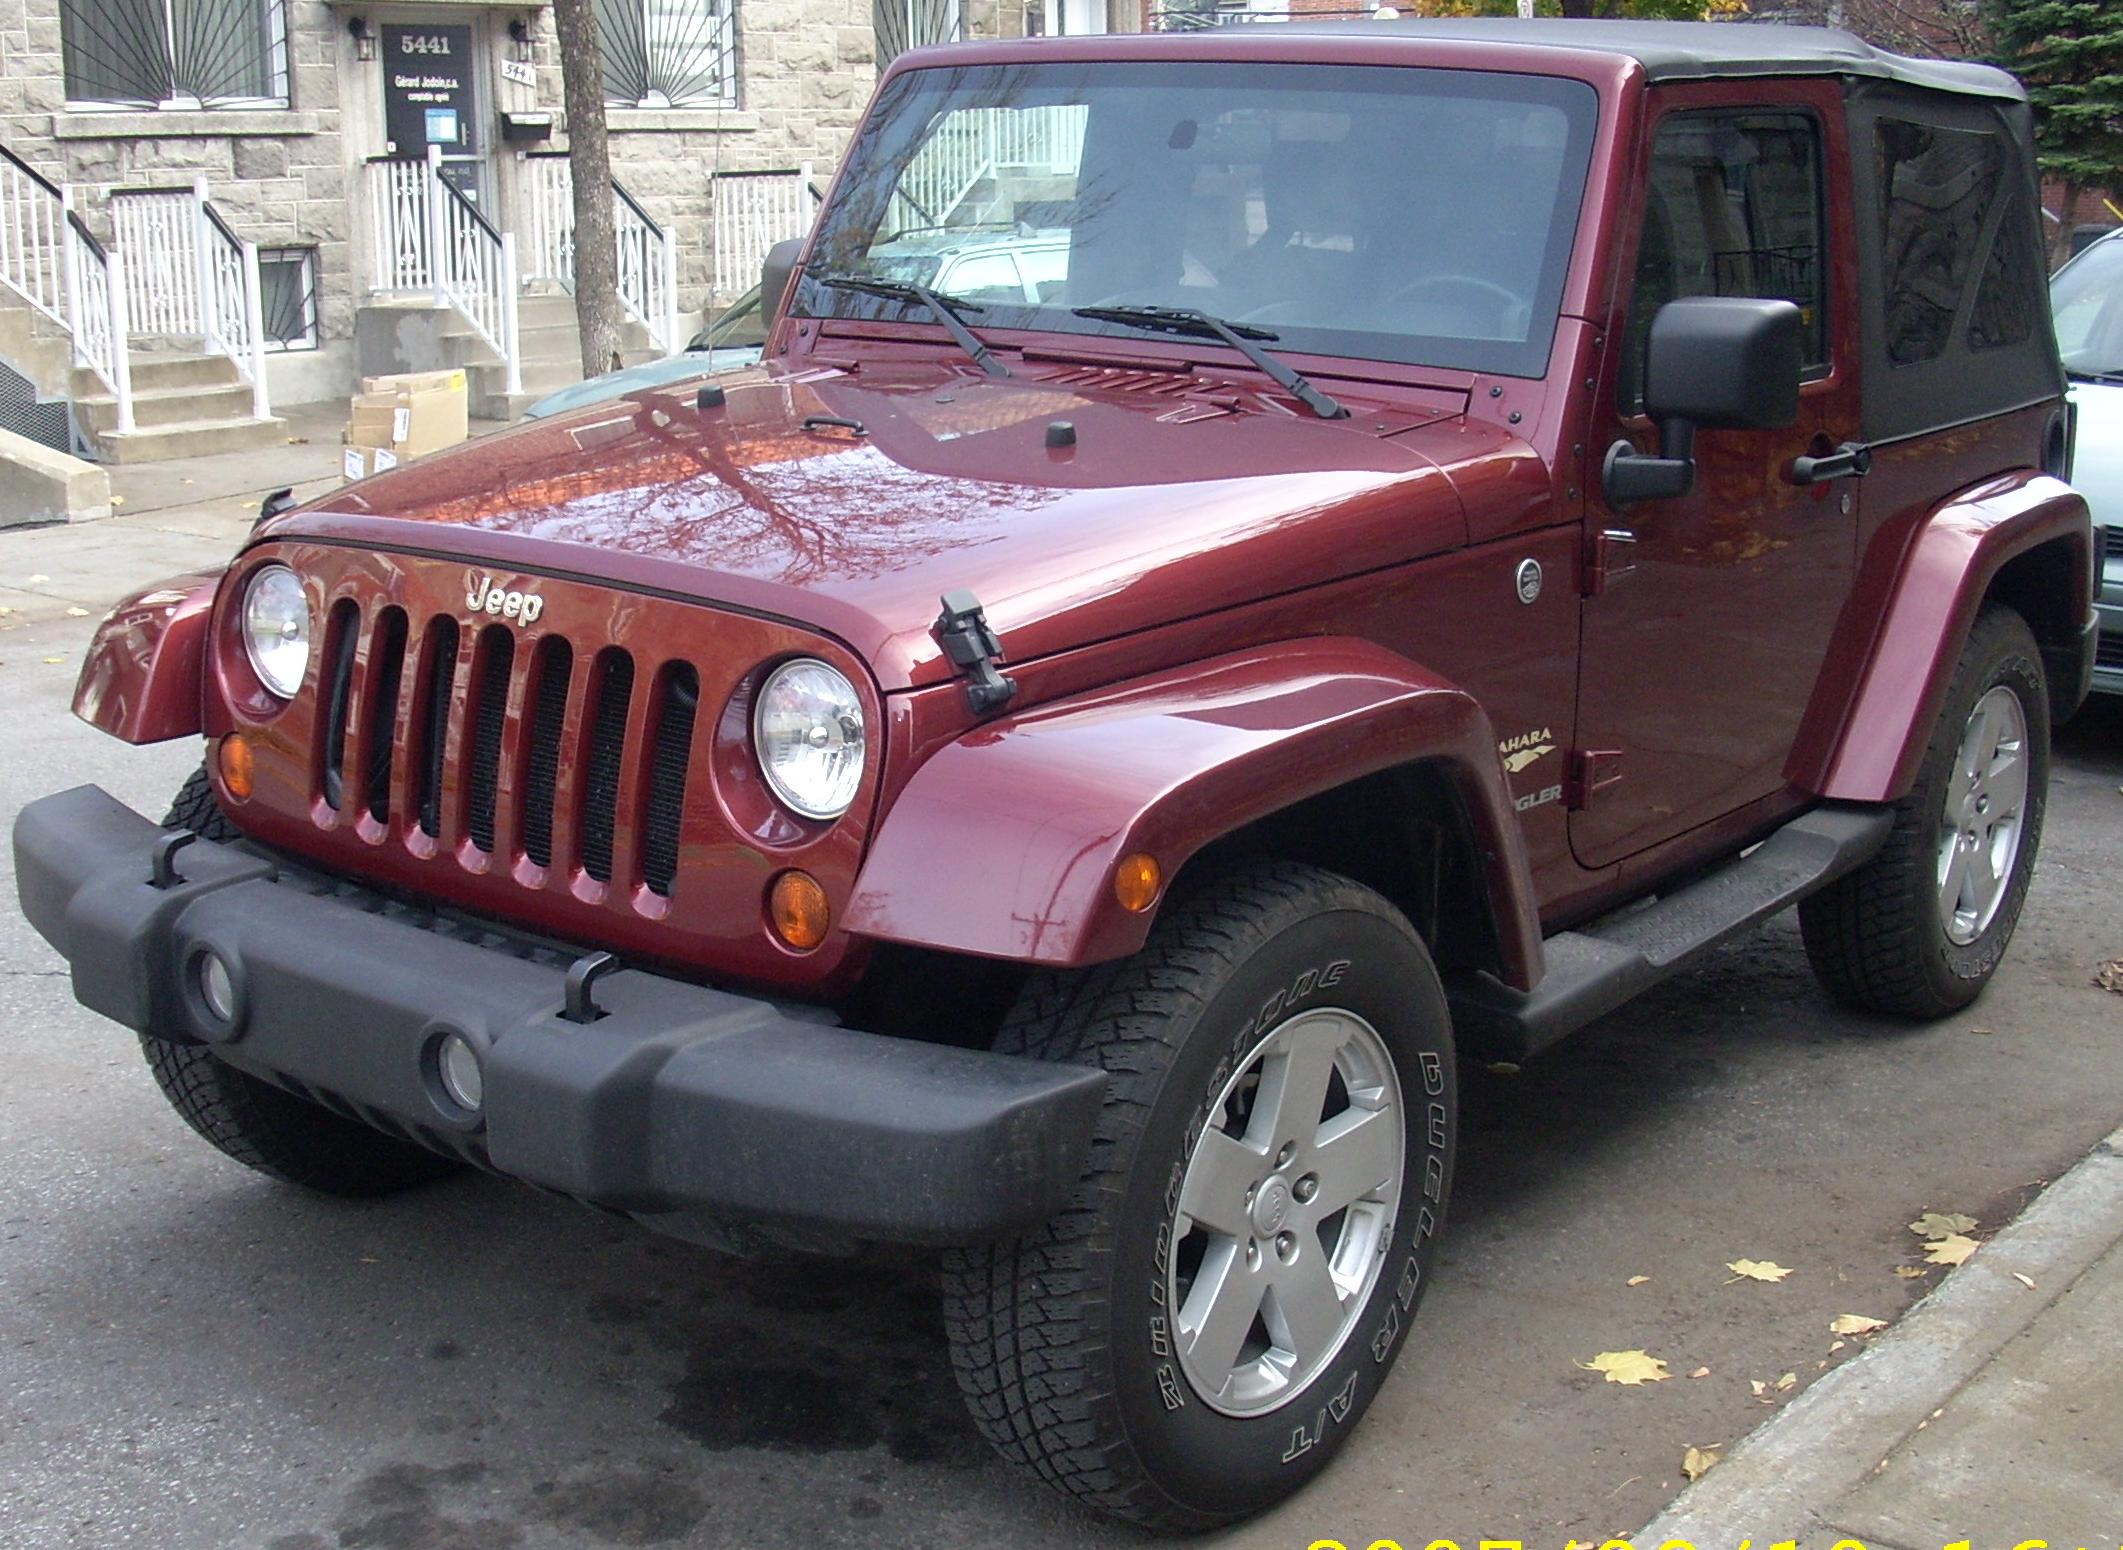 Jeep Wrangler Wiki >> File:Jeep JK Wrangler Sahara 2-Door Convertible.jpg - Wikimedia Commons